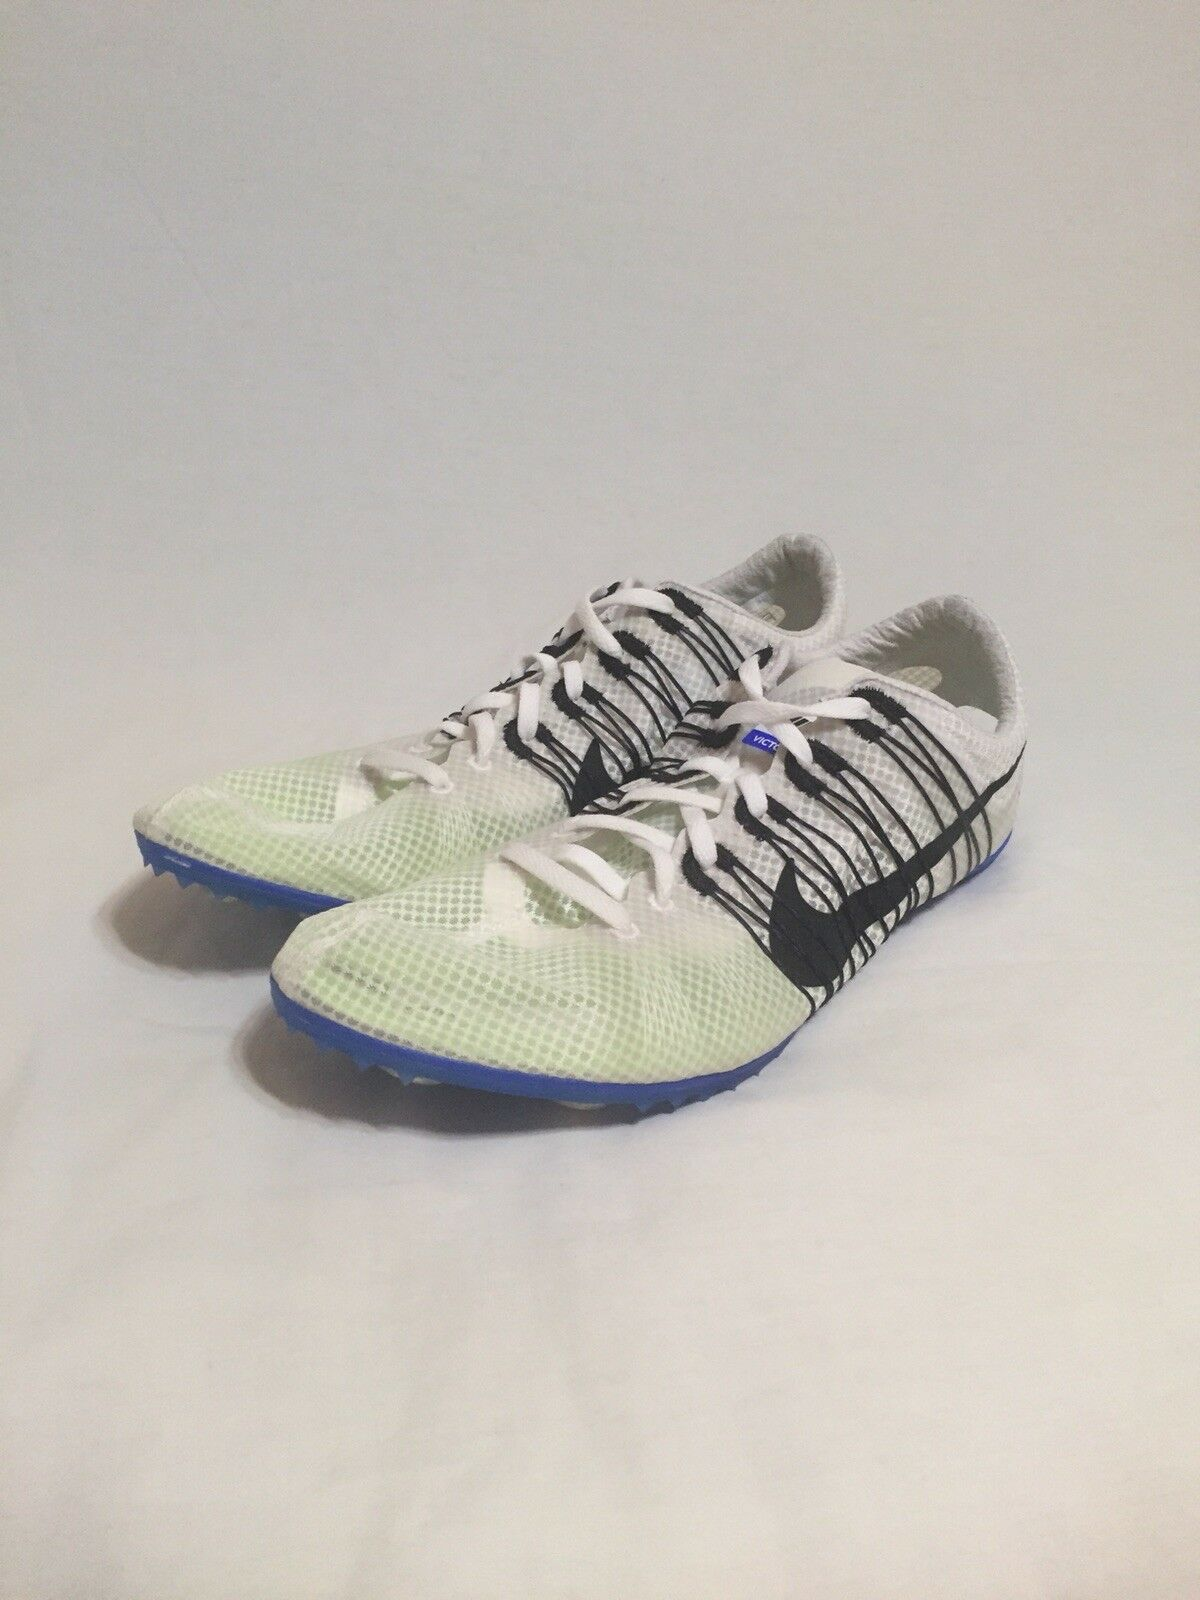 The most popular shoes for men and women New Nike Zoom Victory 2 Mens Track Field Spikes Distance Racing Shoes M-Comfortable